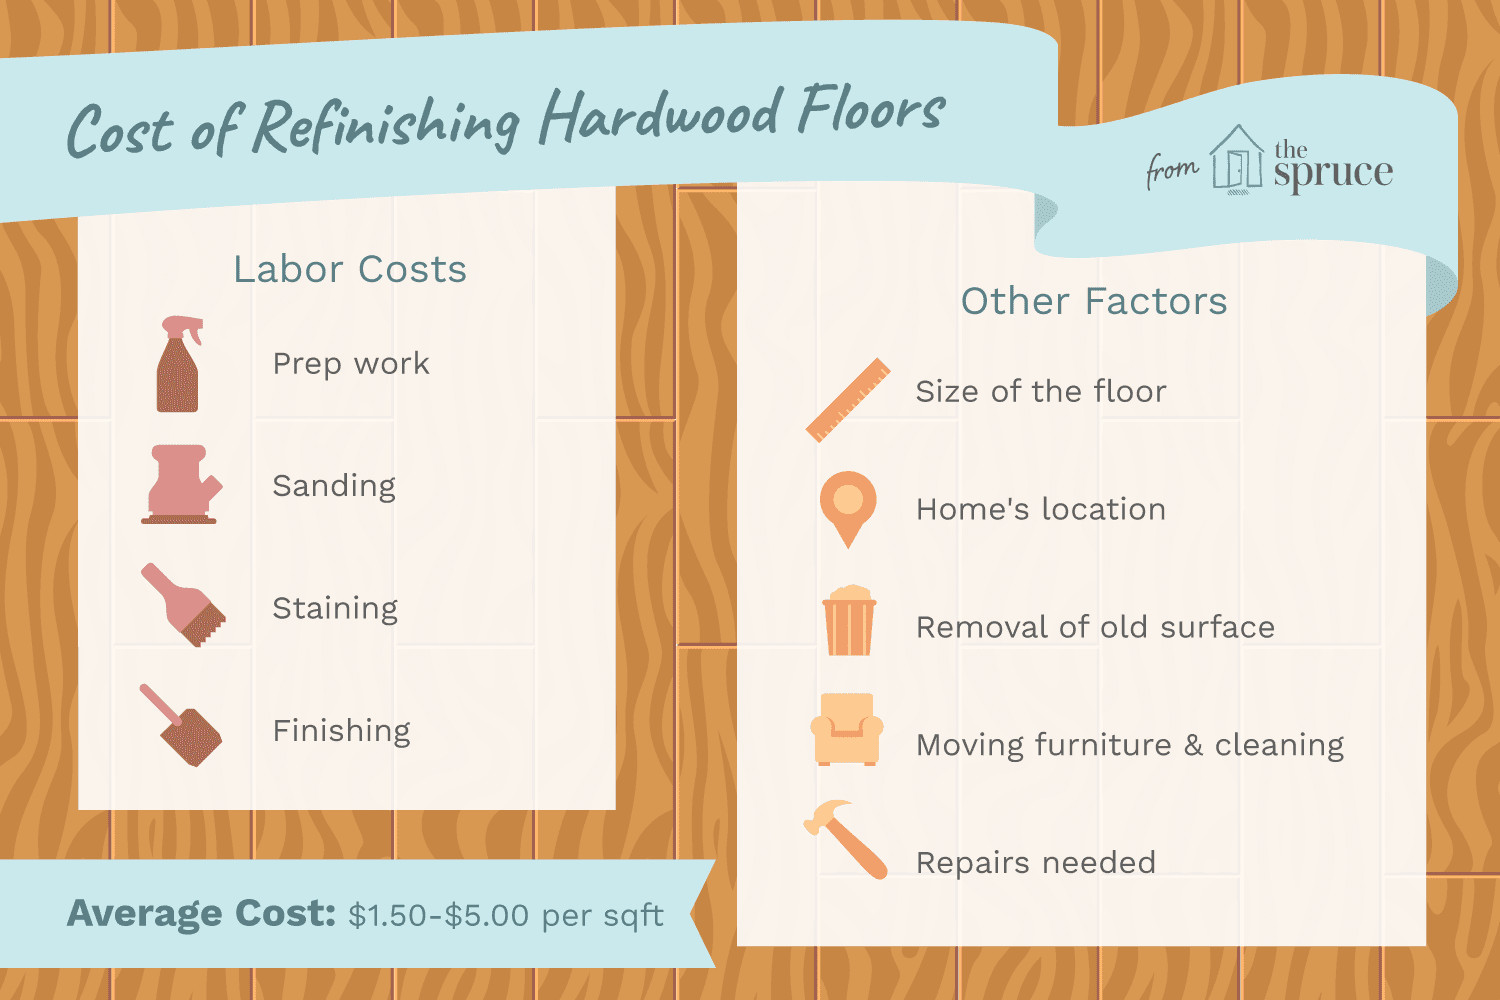 hardwood floor repair companies near me of the cost to refinish hardwood floors within cost to refinish hardwood floors 1314853 final 5bb6259346e0fb0026825ce2